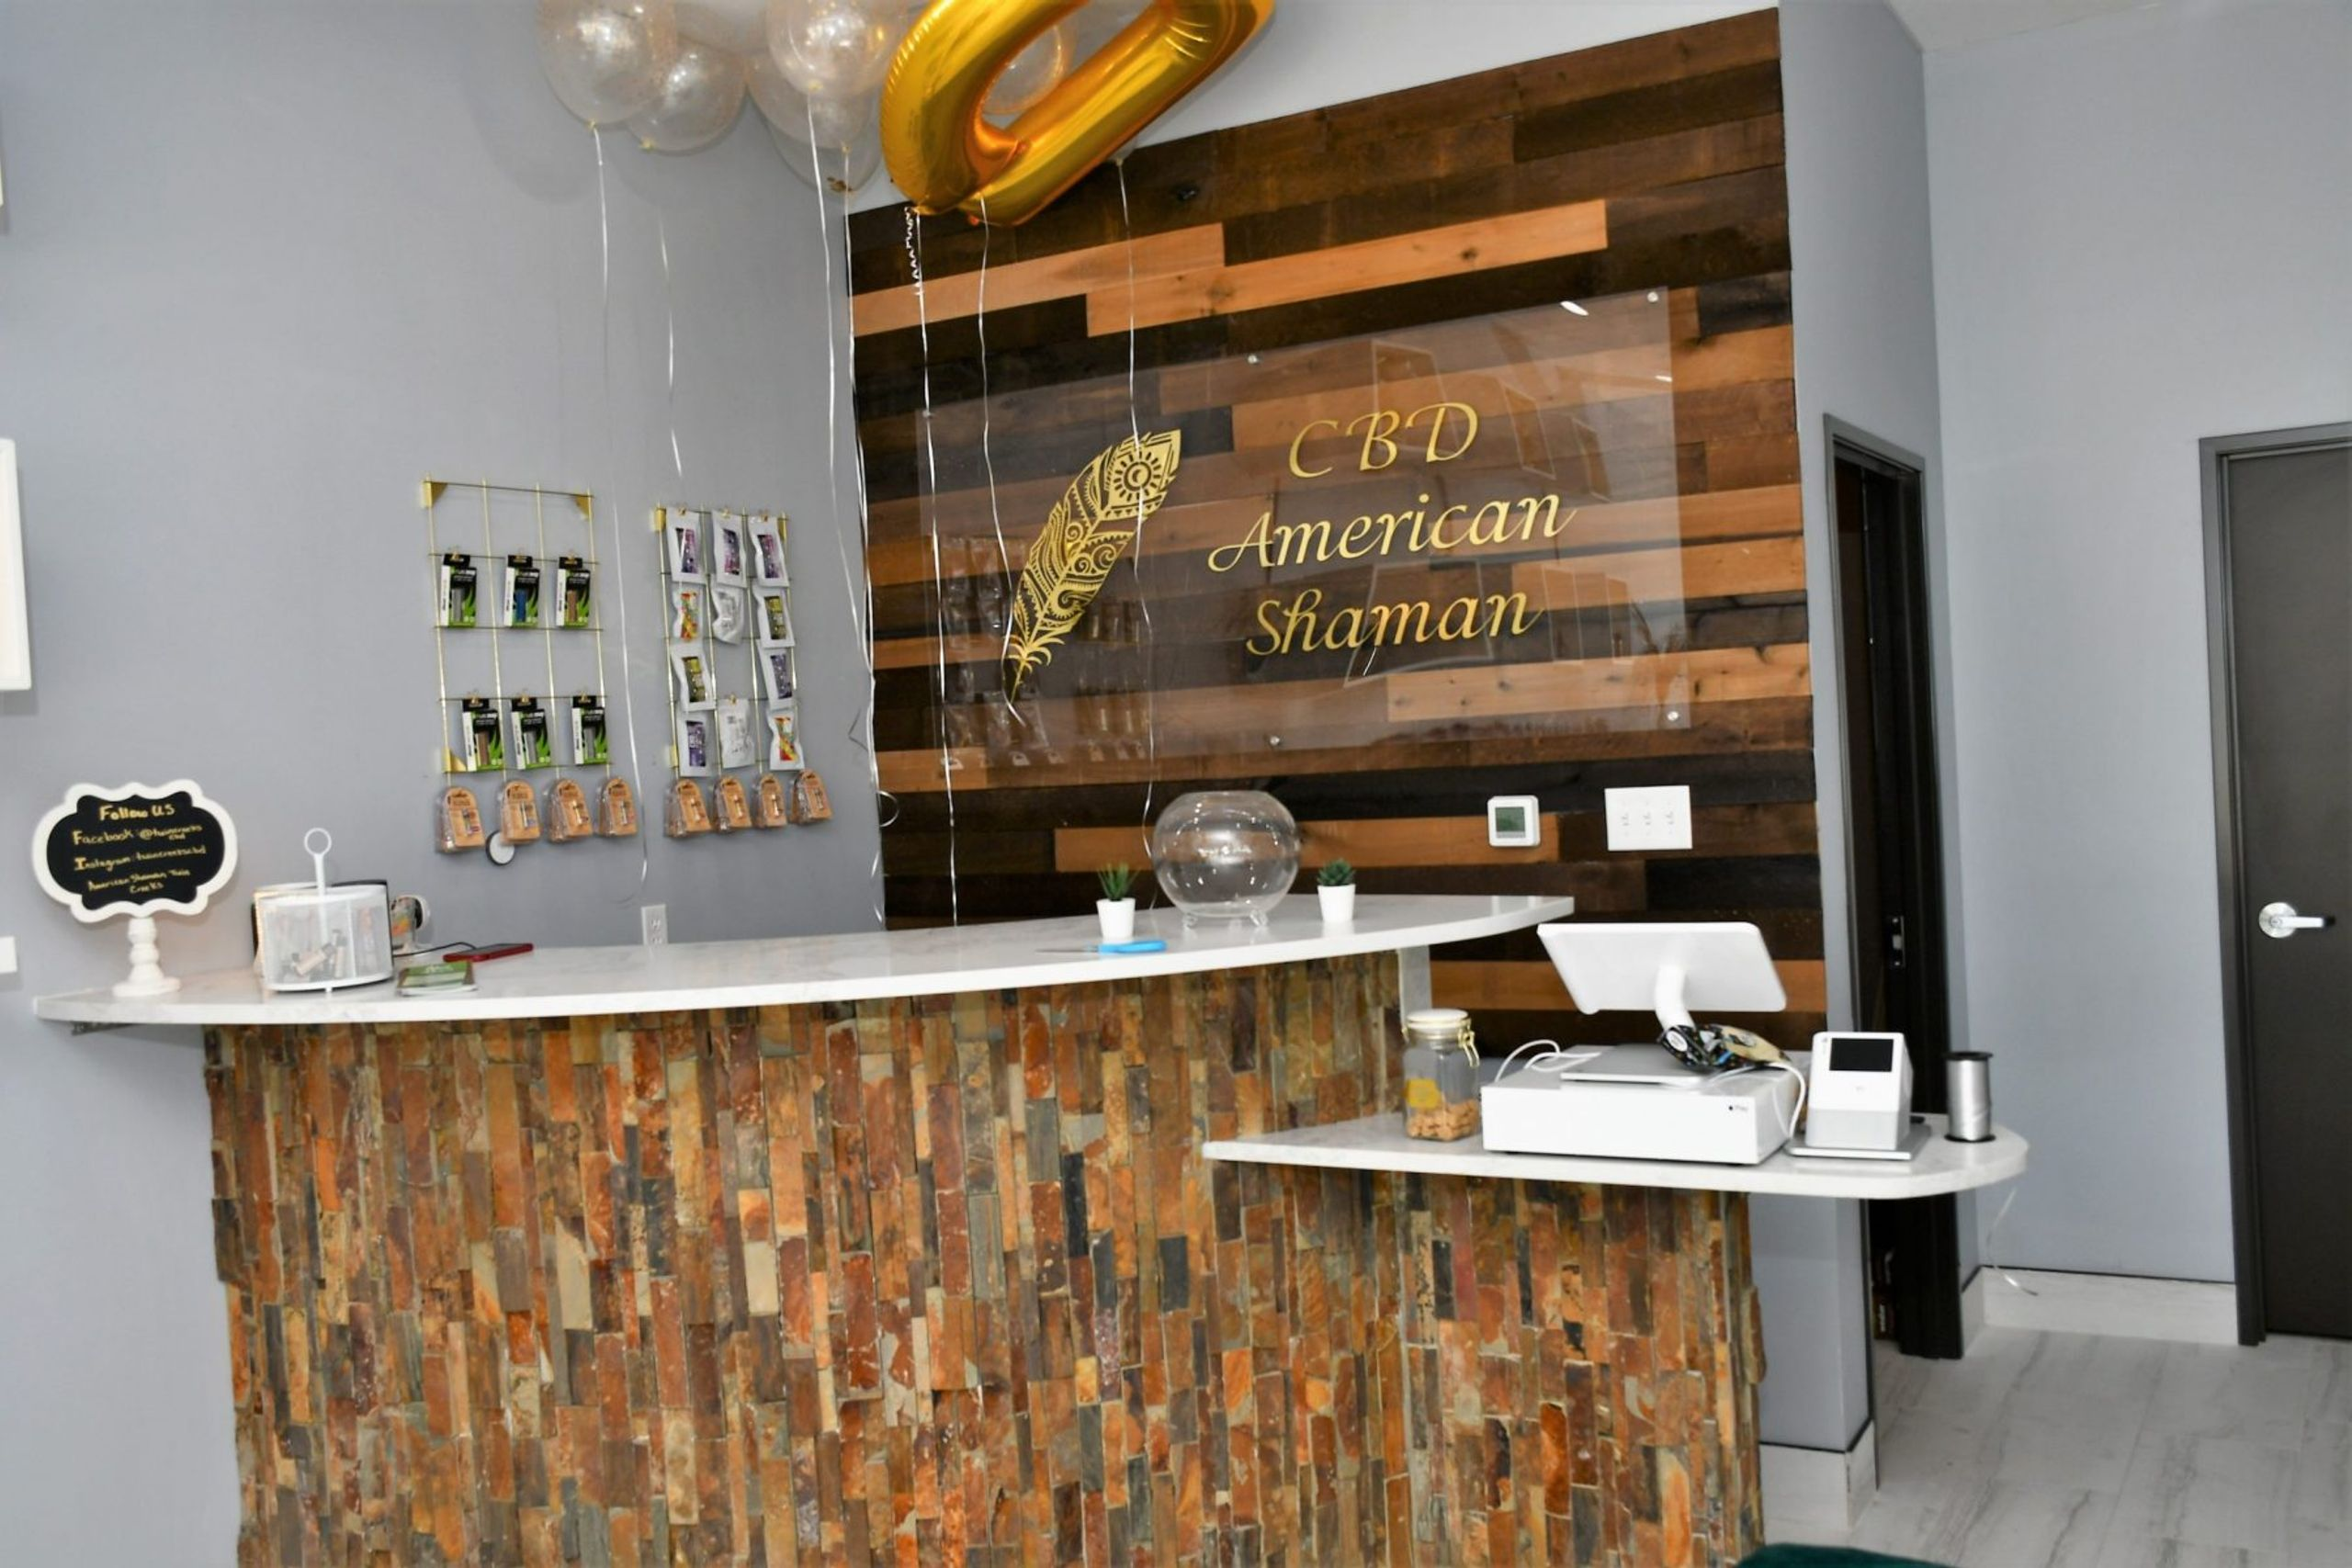 Front counter of CBD store with balloons